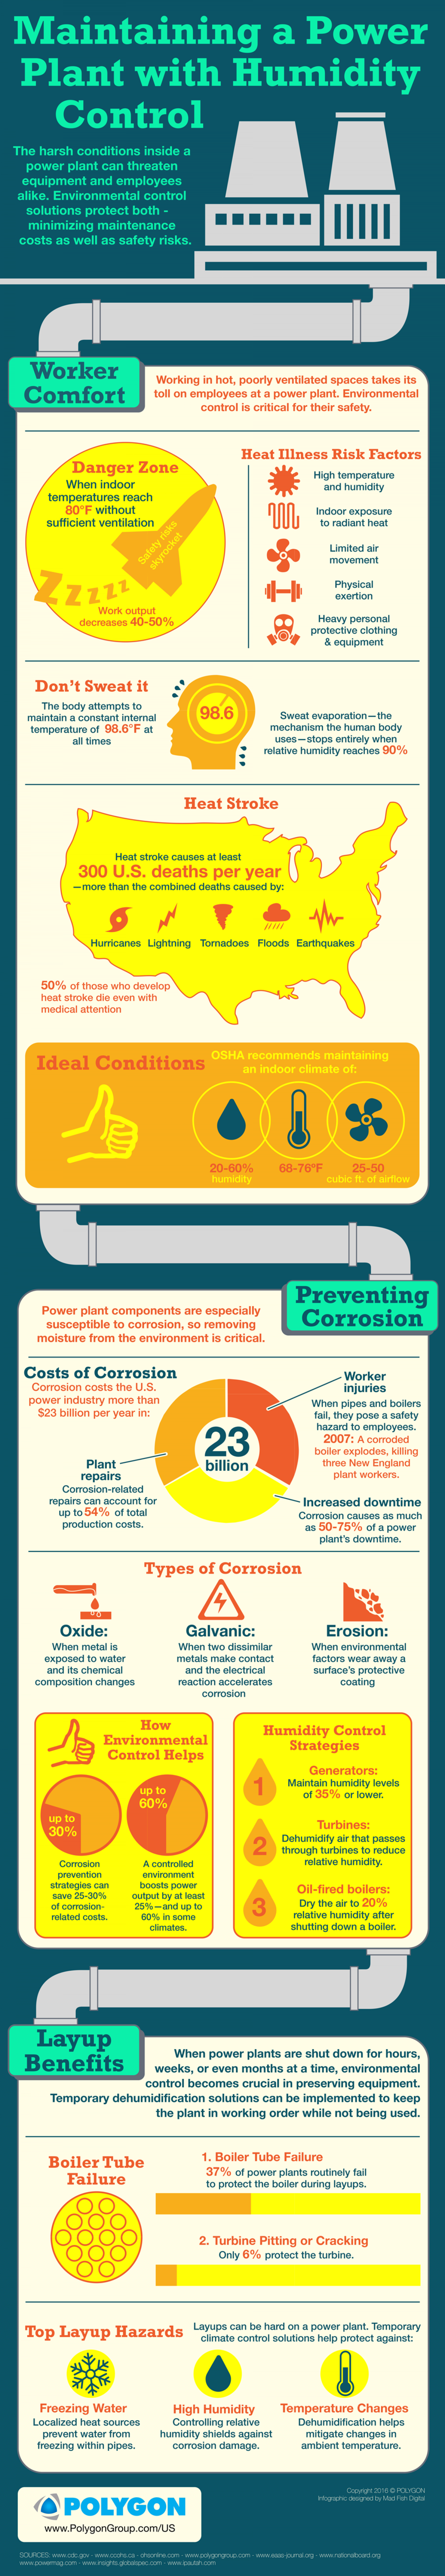 Maintaining a Power Plant with Humidity Control Infographic